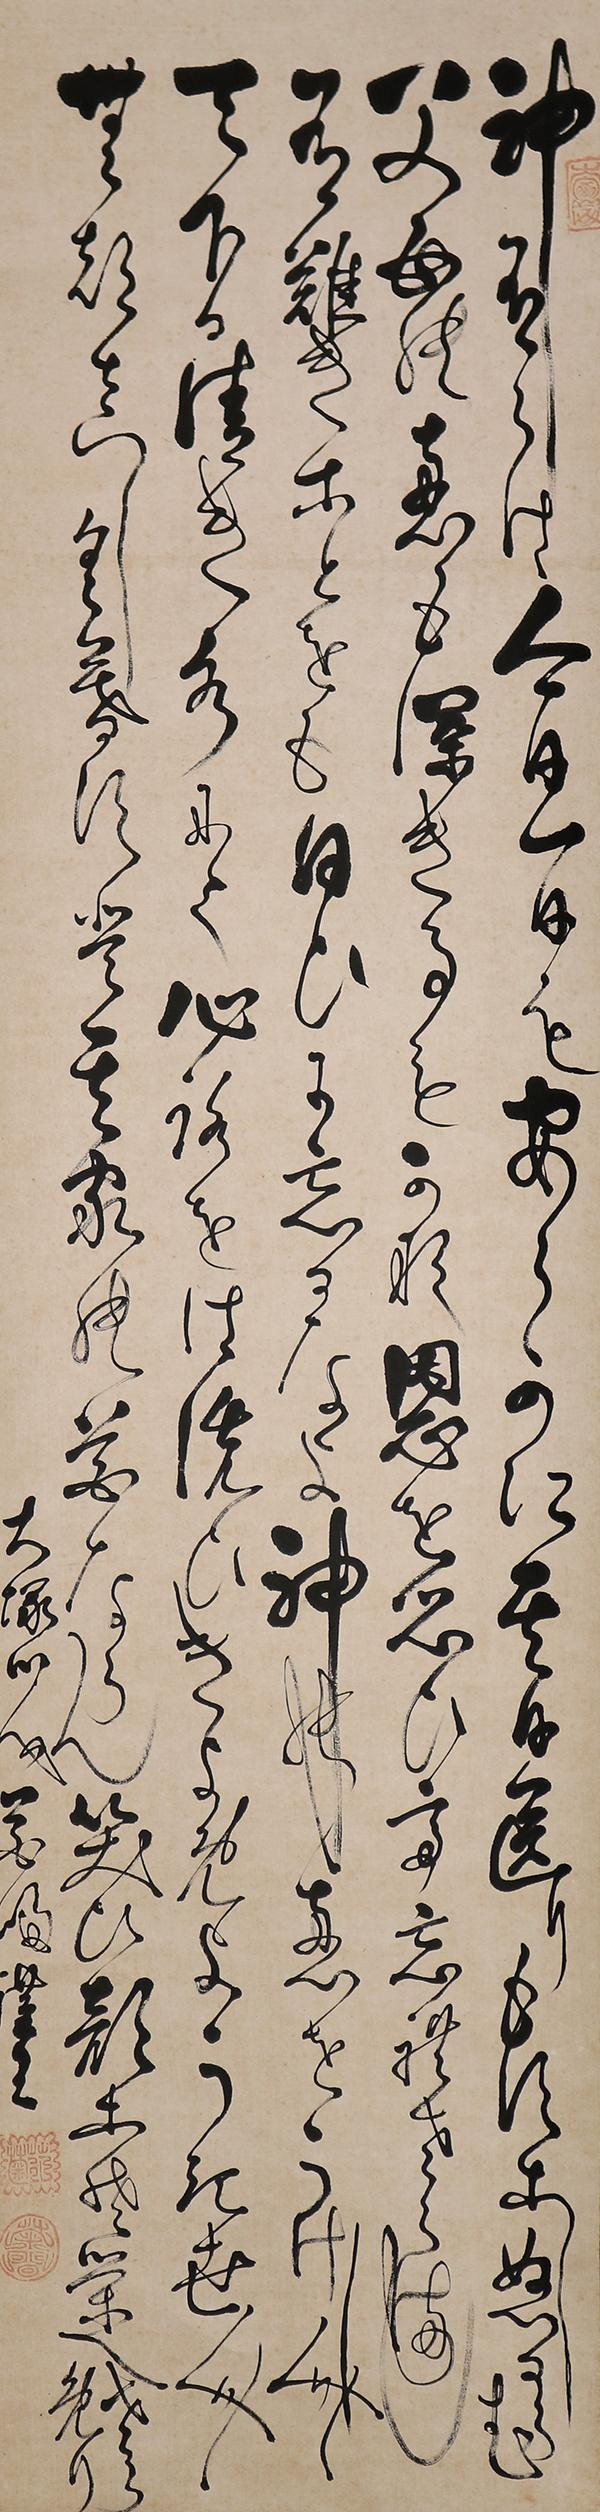 Japanese Scroll Calligraphy